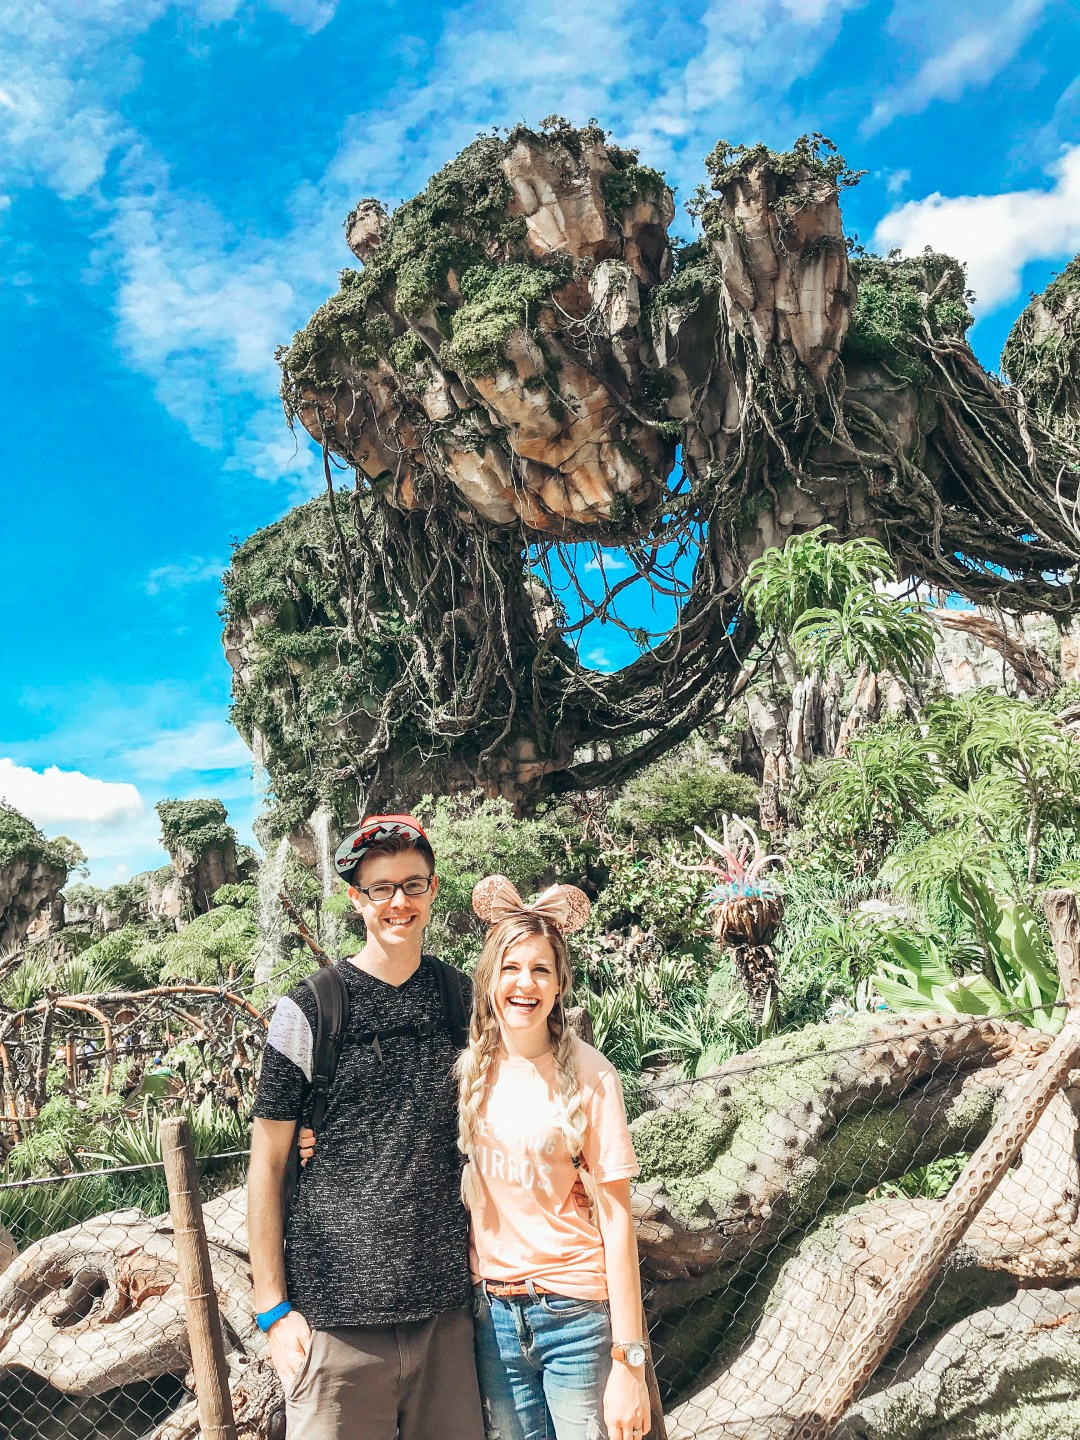 10 Things For Adults in Walt Disney World